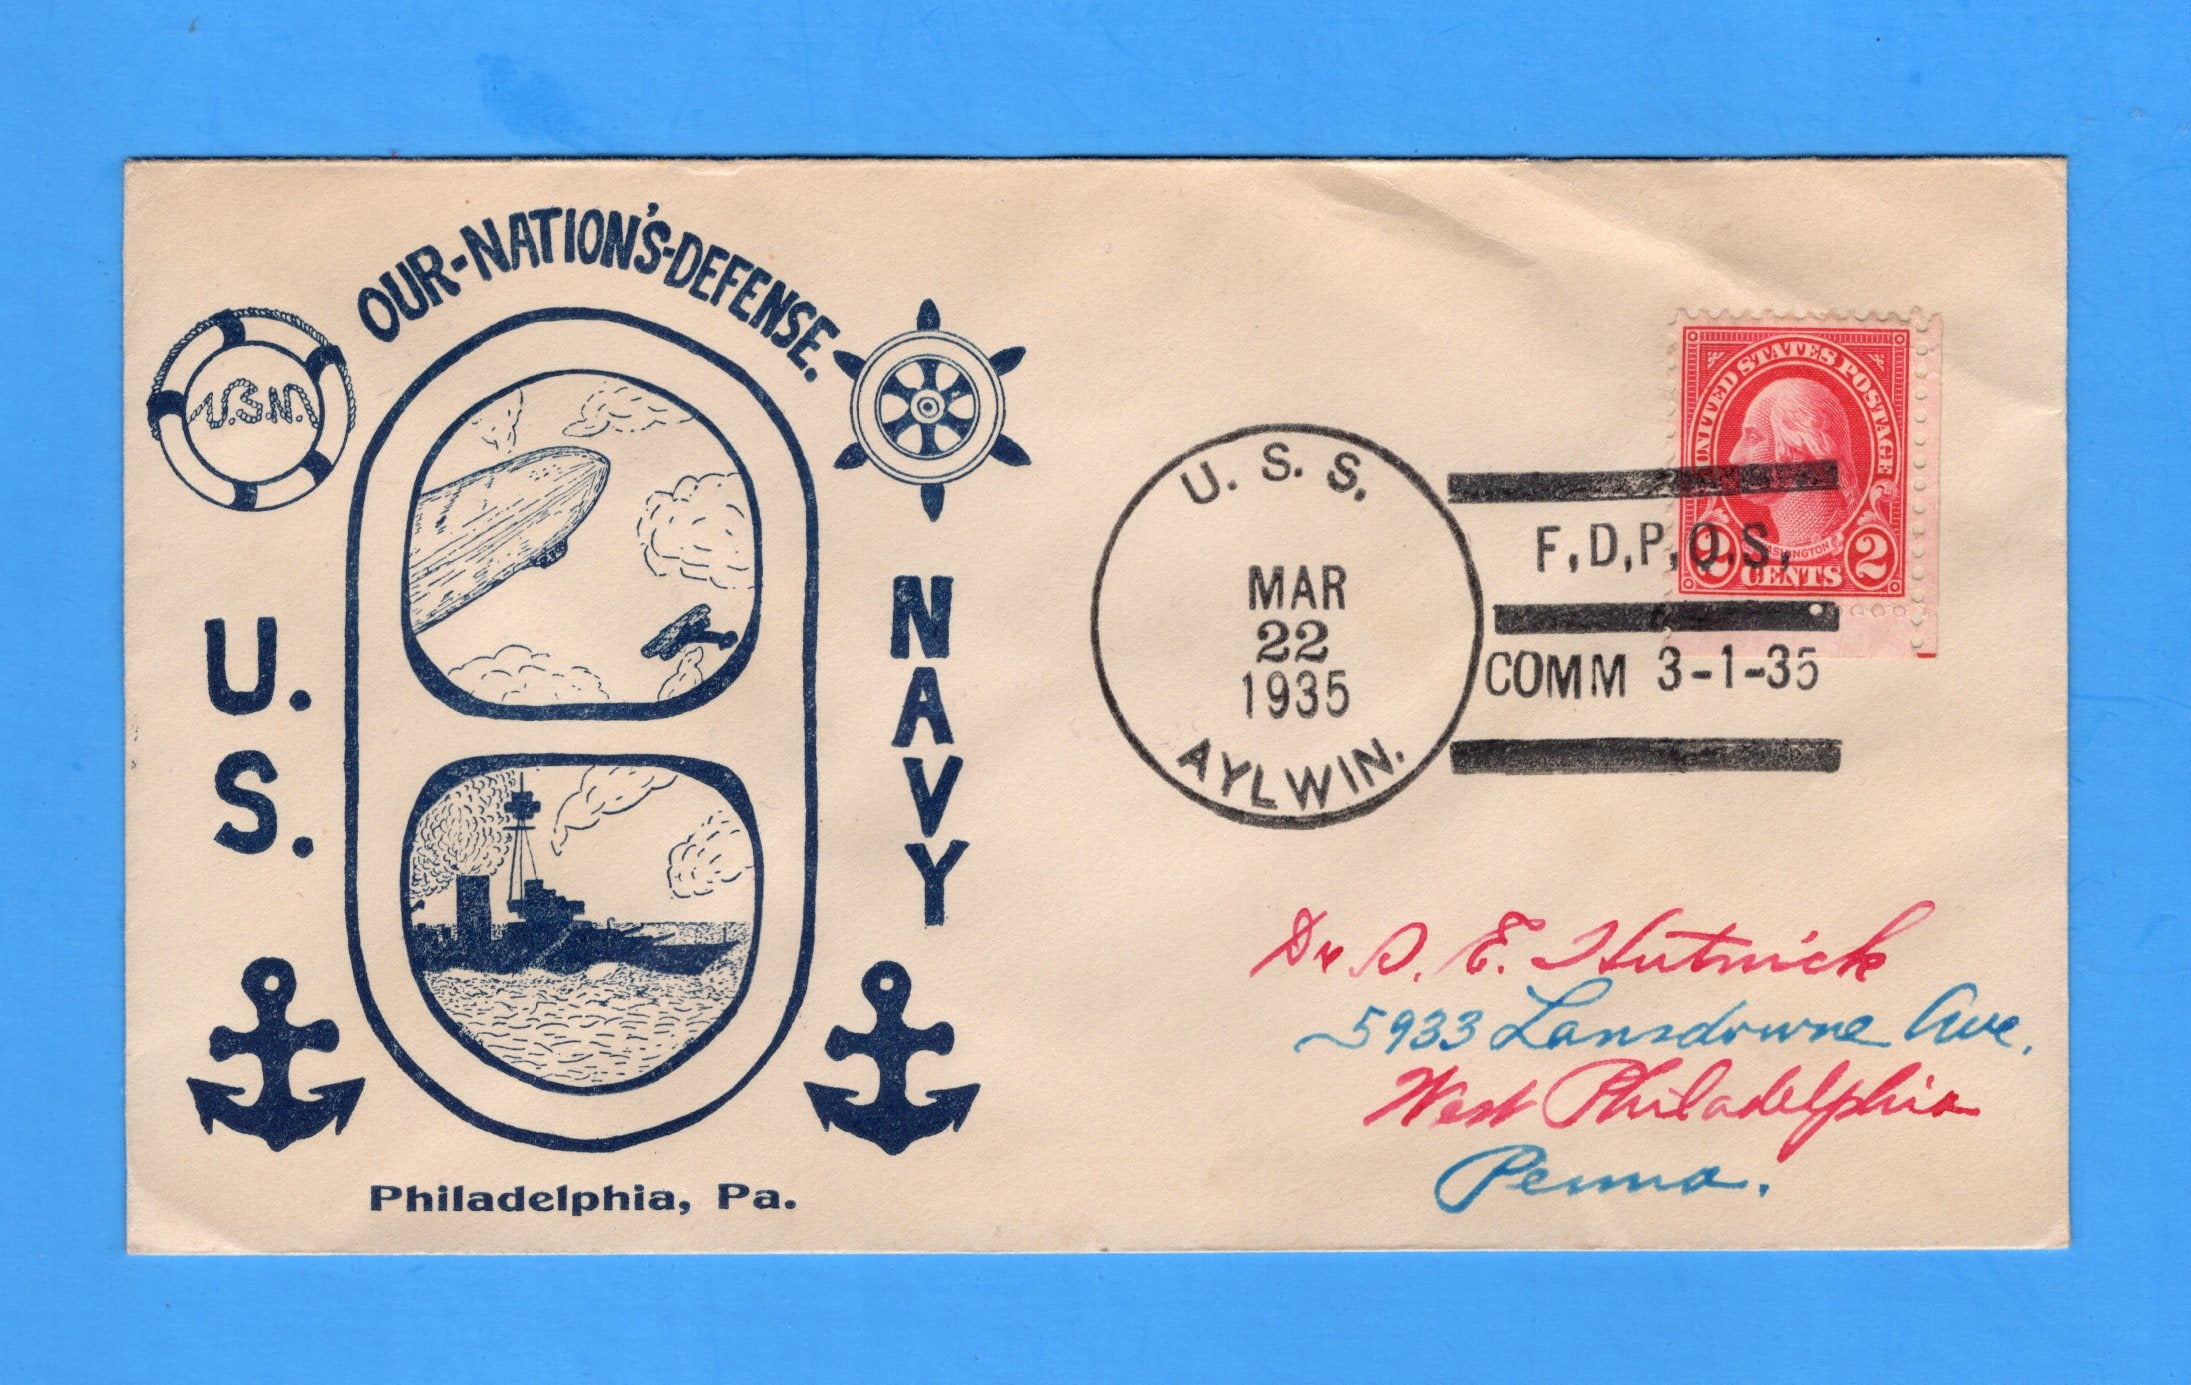 USS Aylwin DD-355 First Day Postal Service March 22, 1935